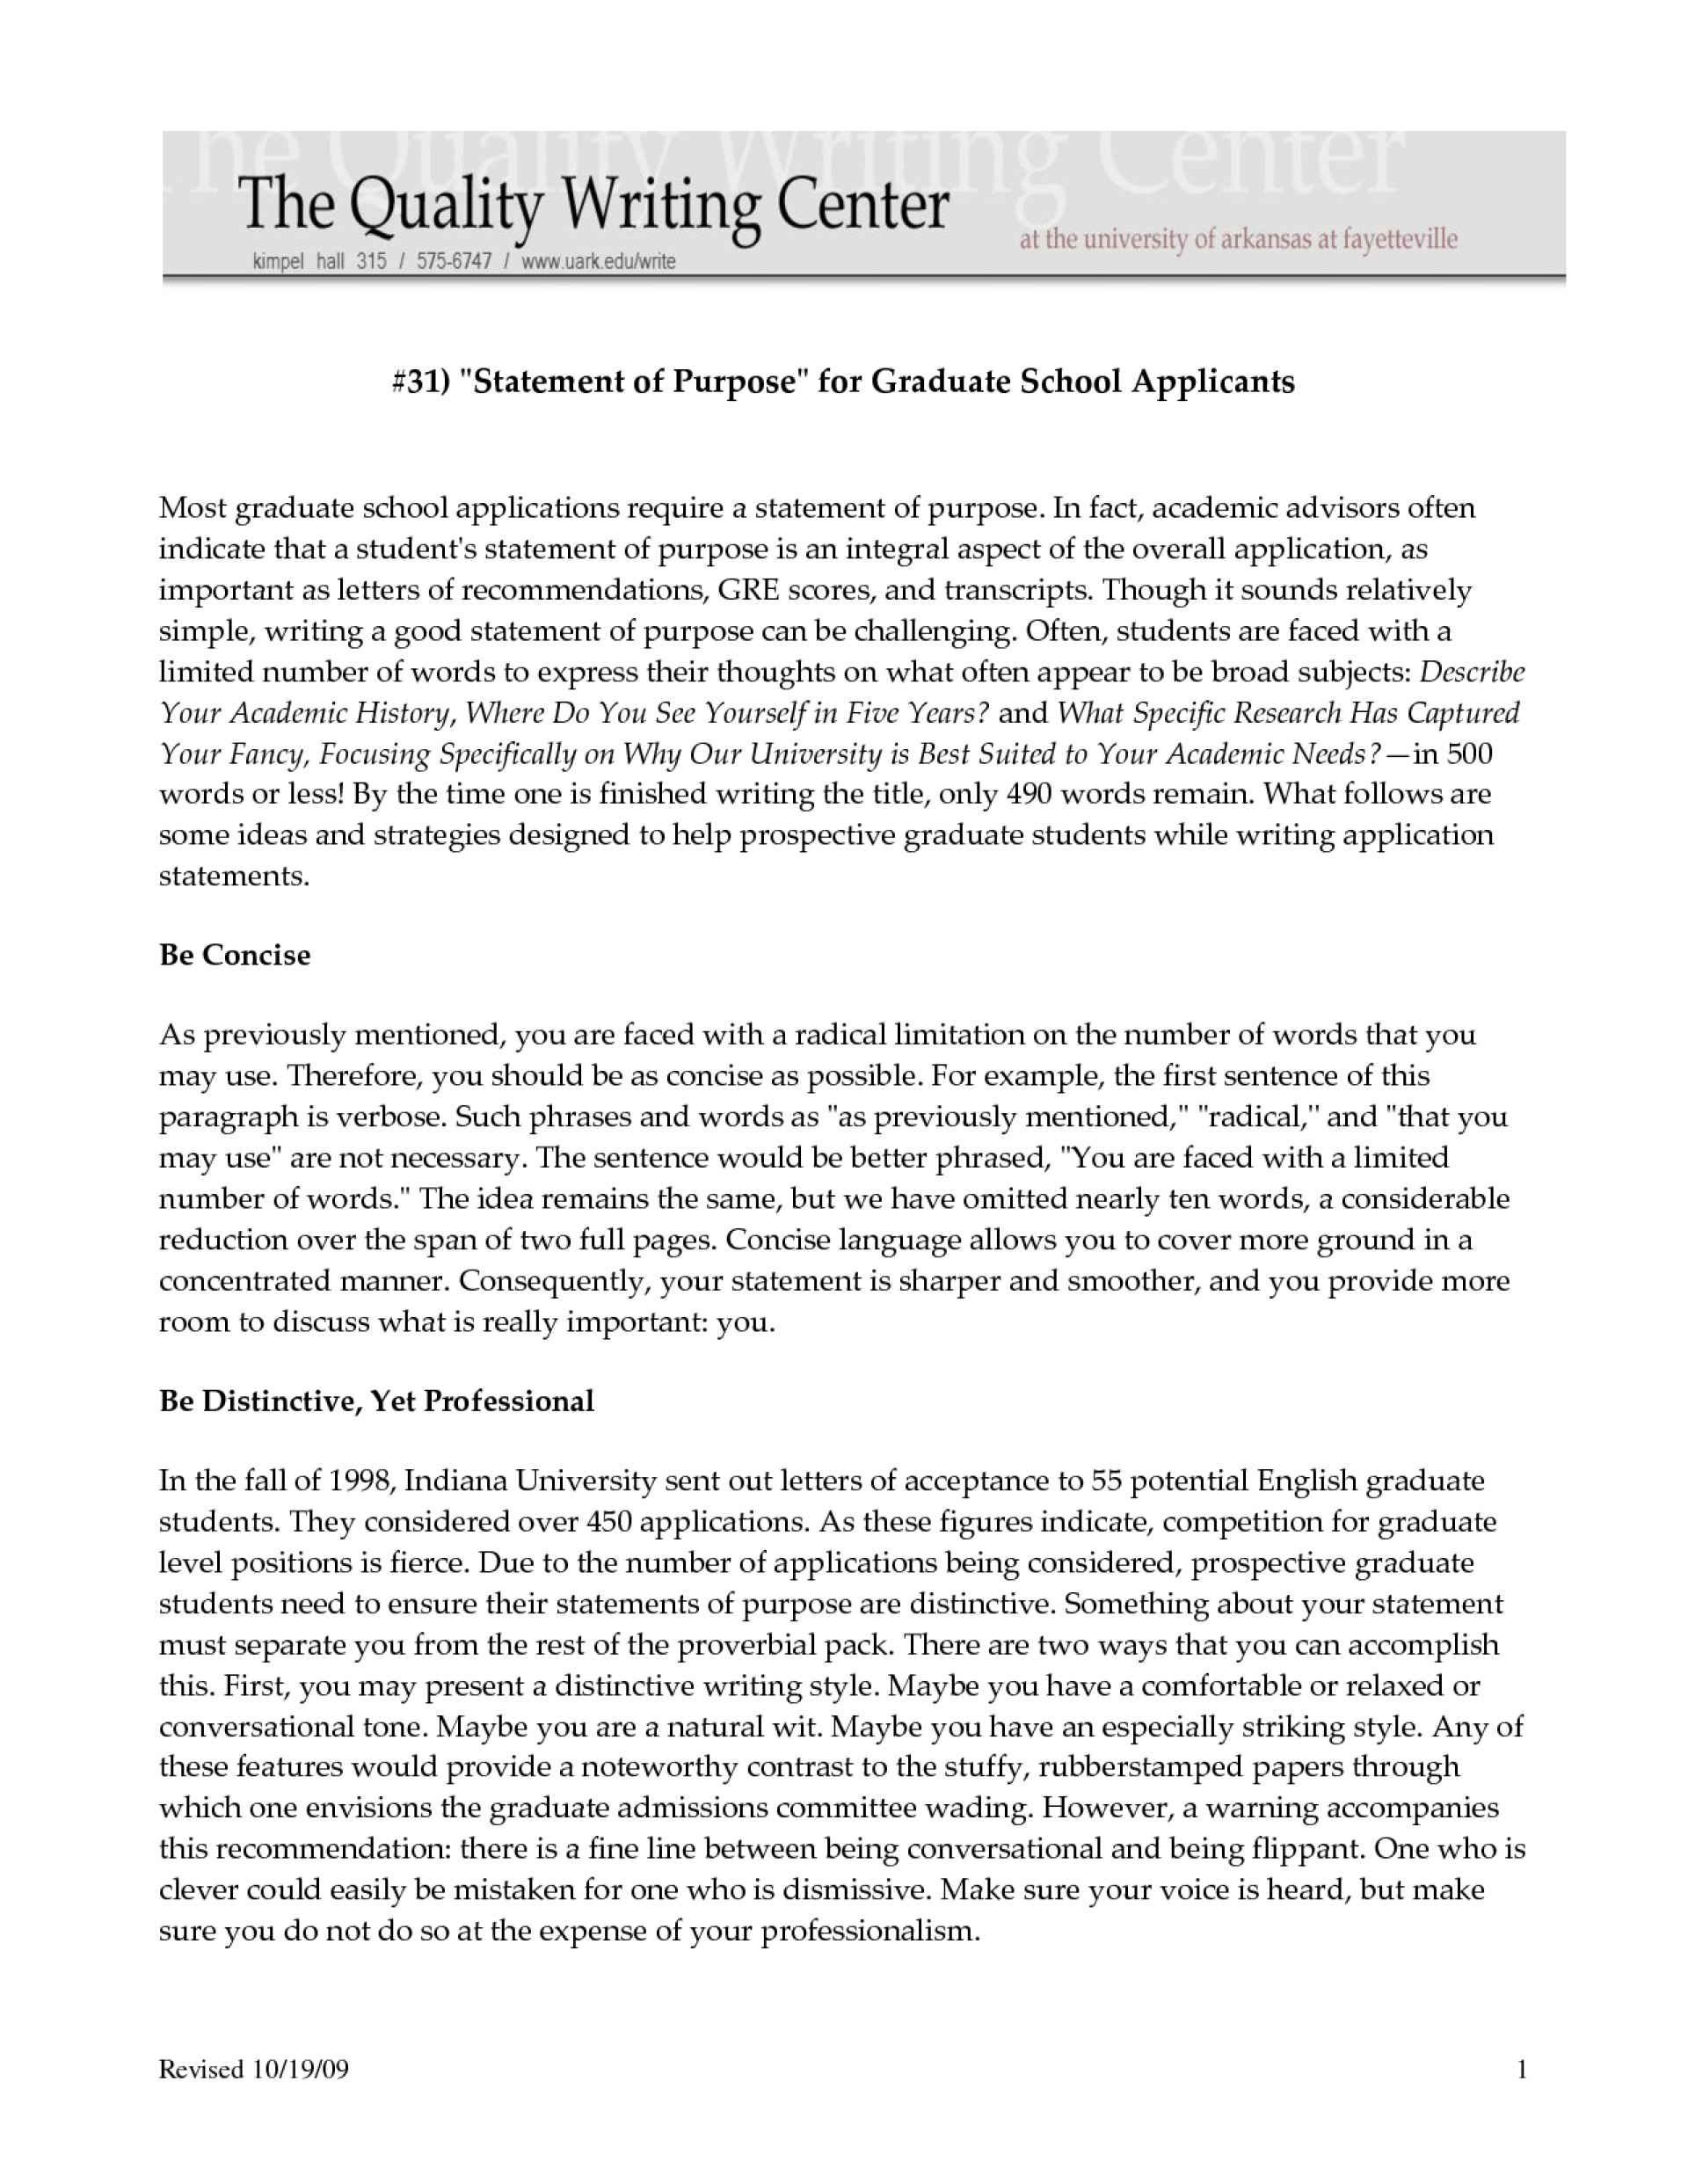 009 Personal Statement For Graduate School Sample Essays Essay Wonderful Nursing Pdf 1920